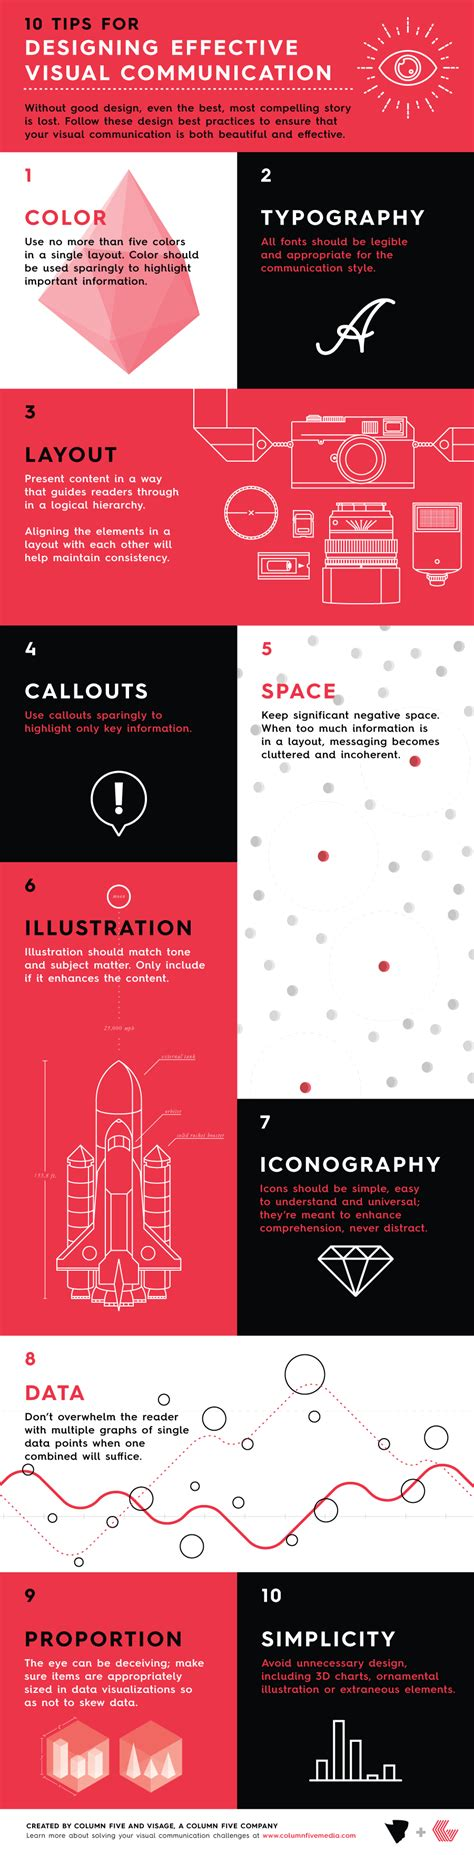 design visual communications wit 10 tips for designing effective visual communication